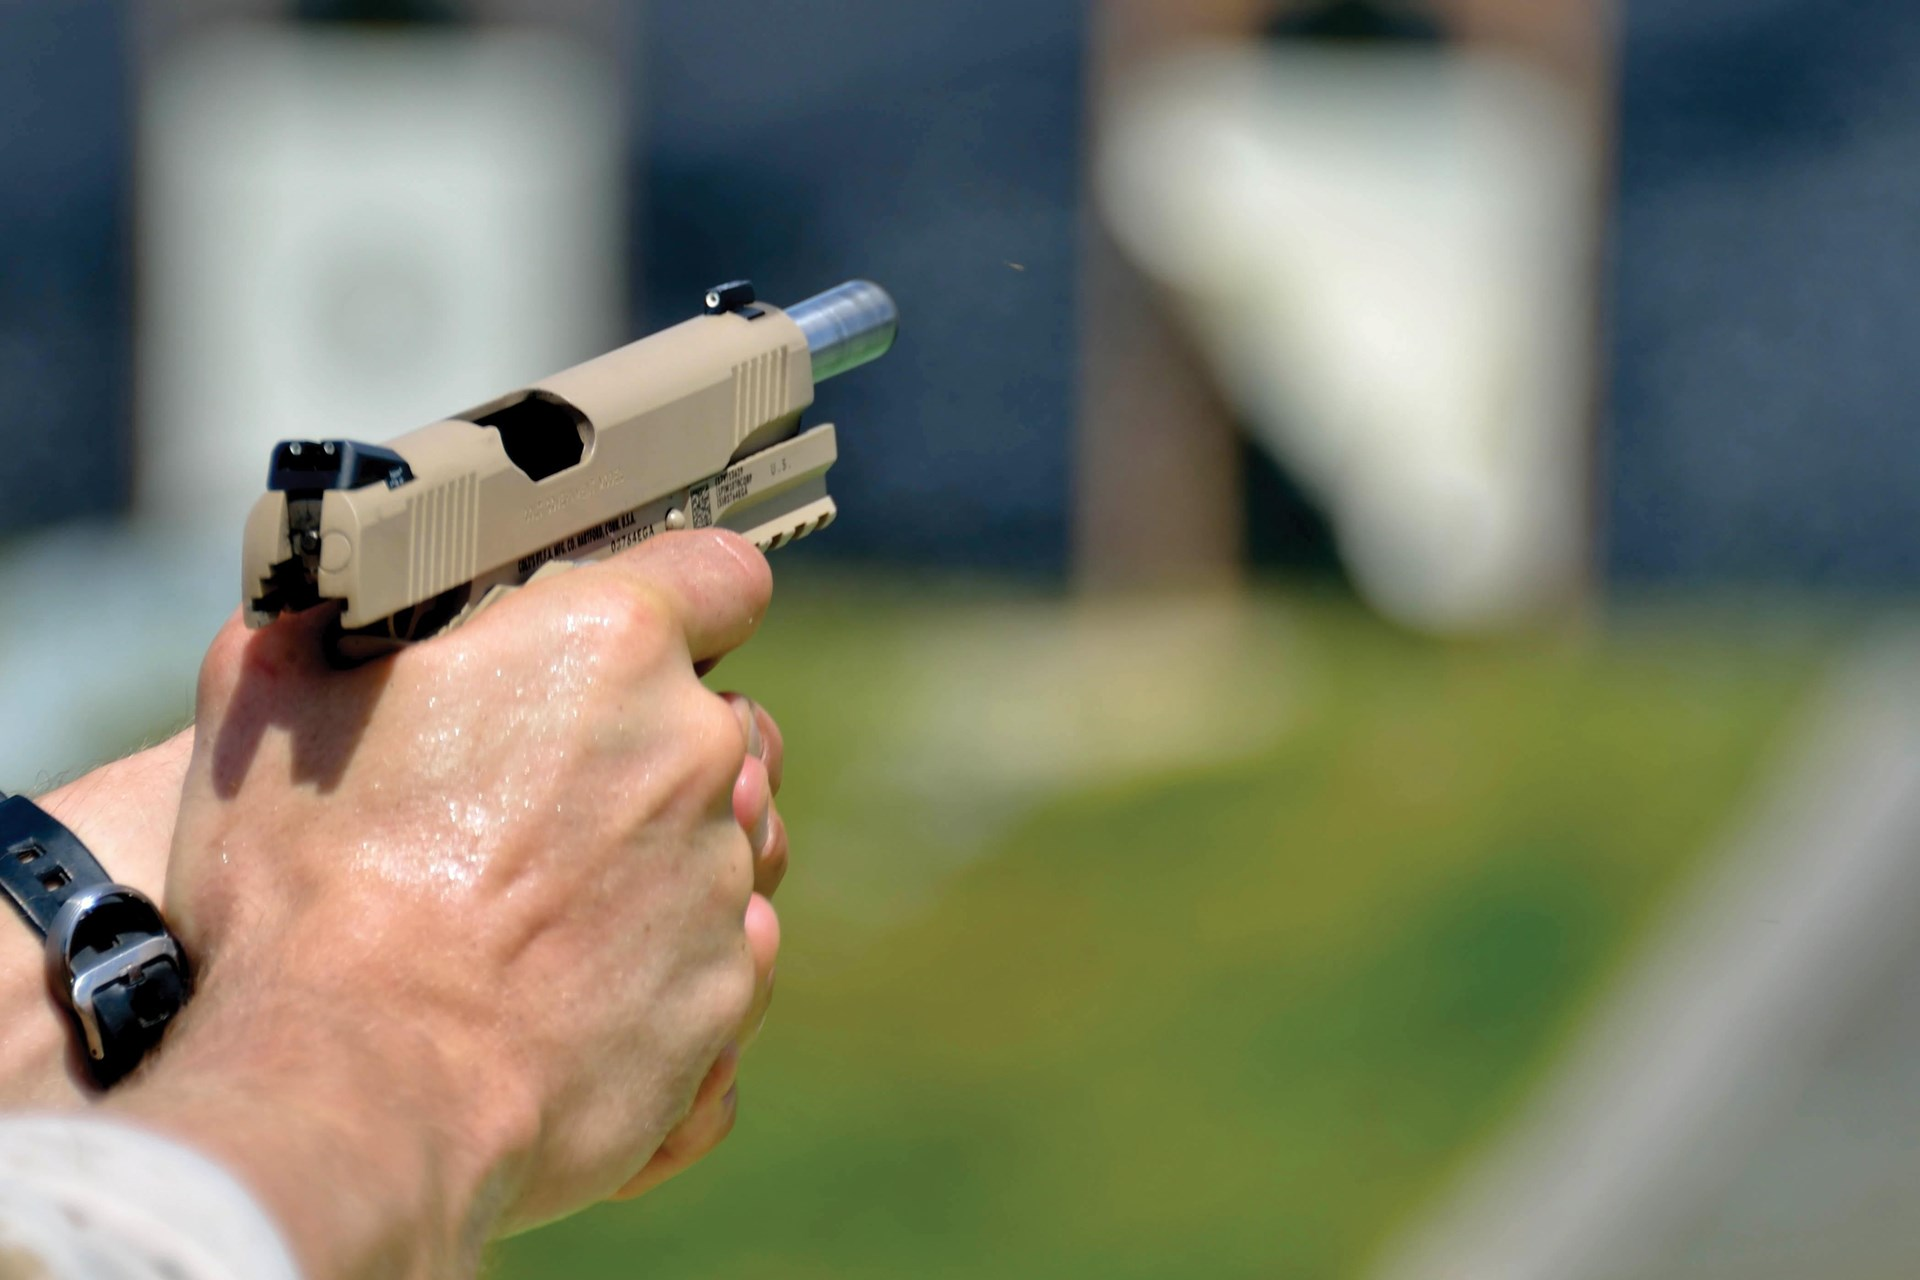 A Doctor Was Denied a Handgun over His (Legal) Use of